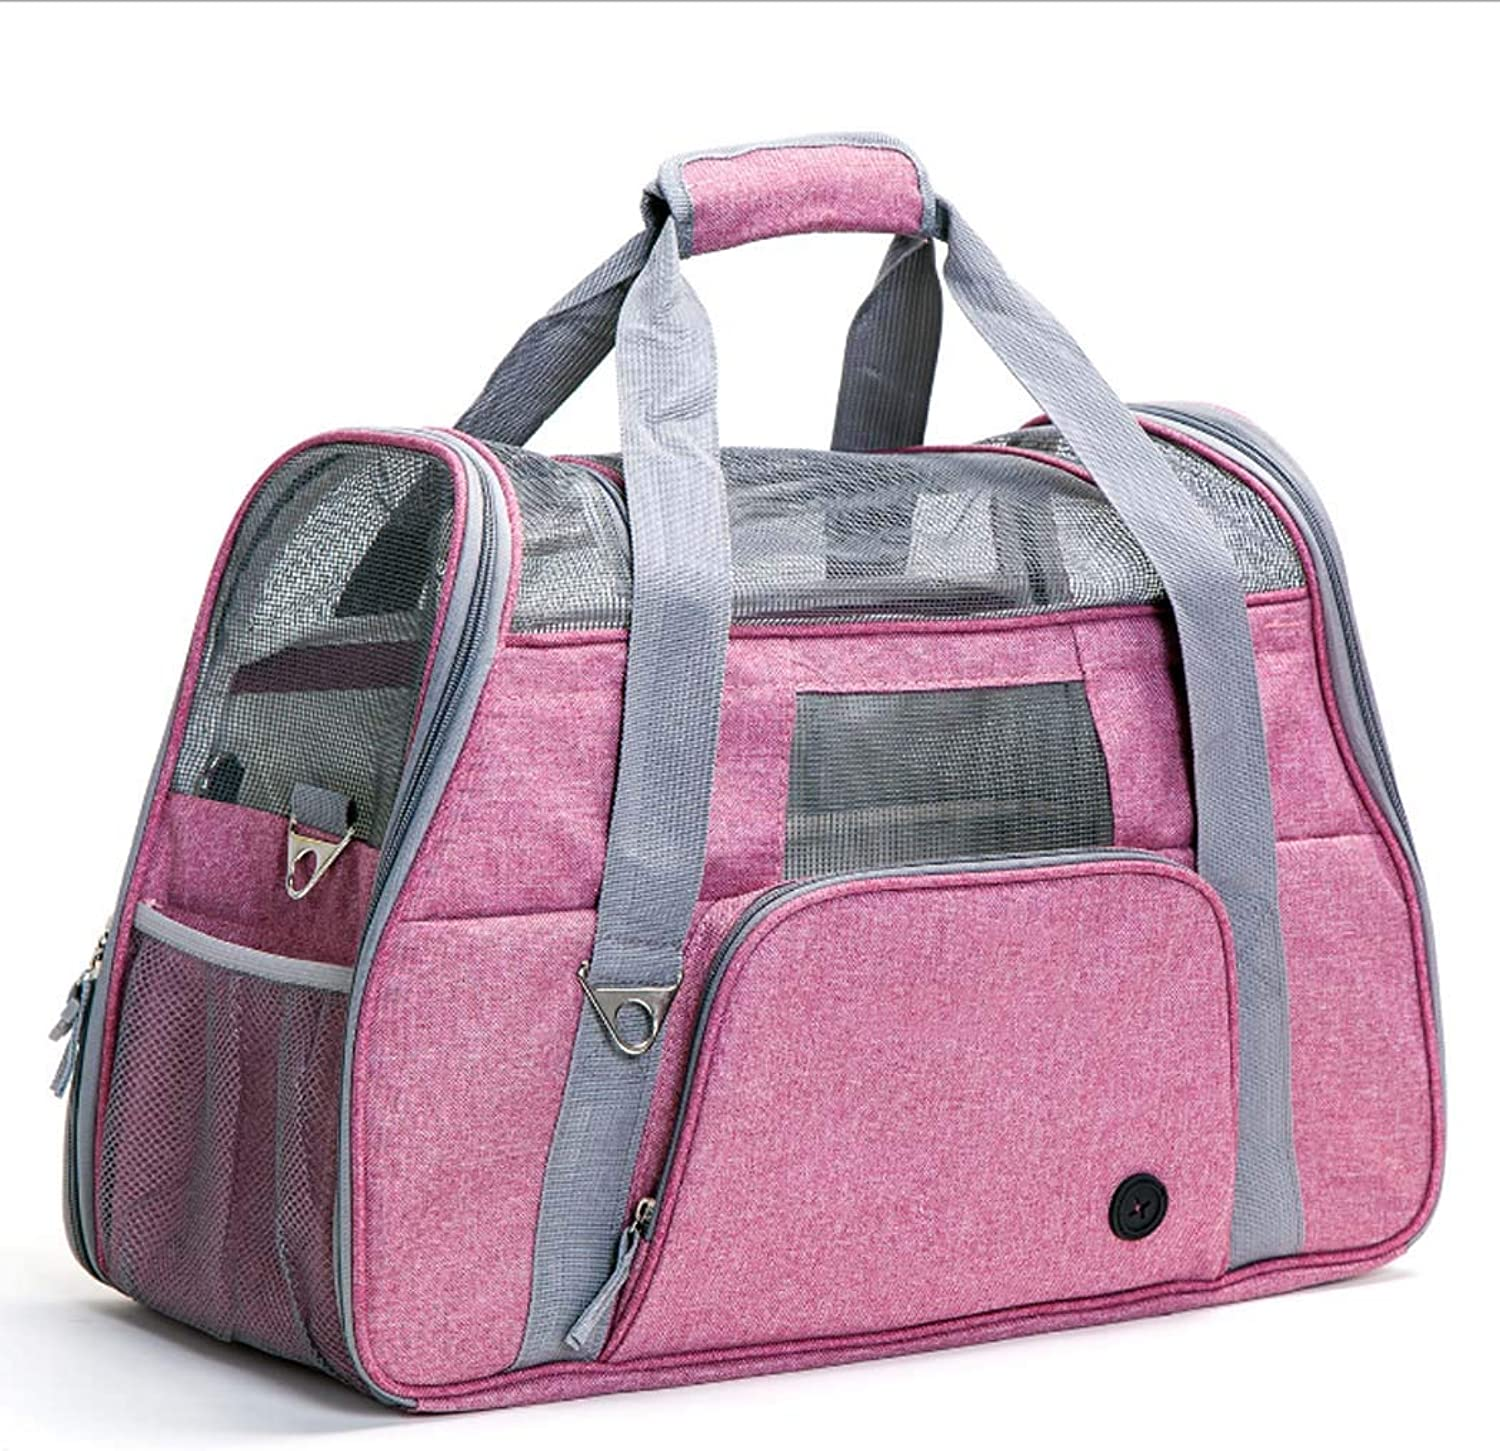 Pet Carrier, pet Portable Diagonal Bag, Airline Approved  SoftEdged cat Travel Handbag Suitable for Dogs and Cats,NO2